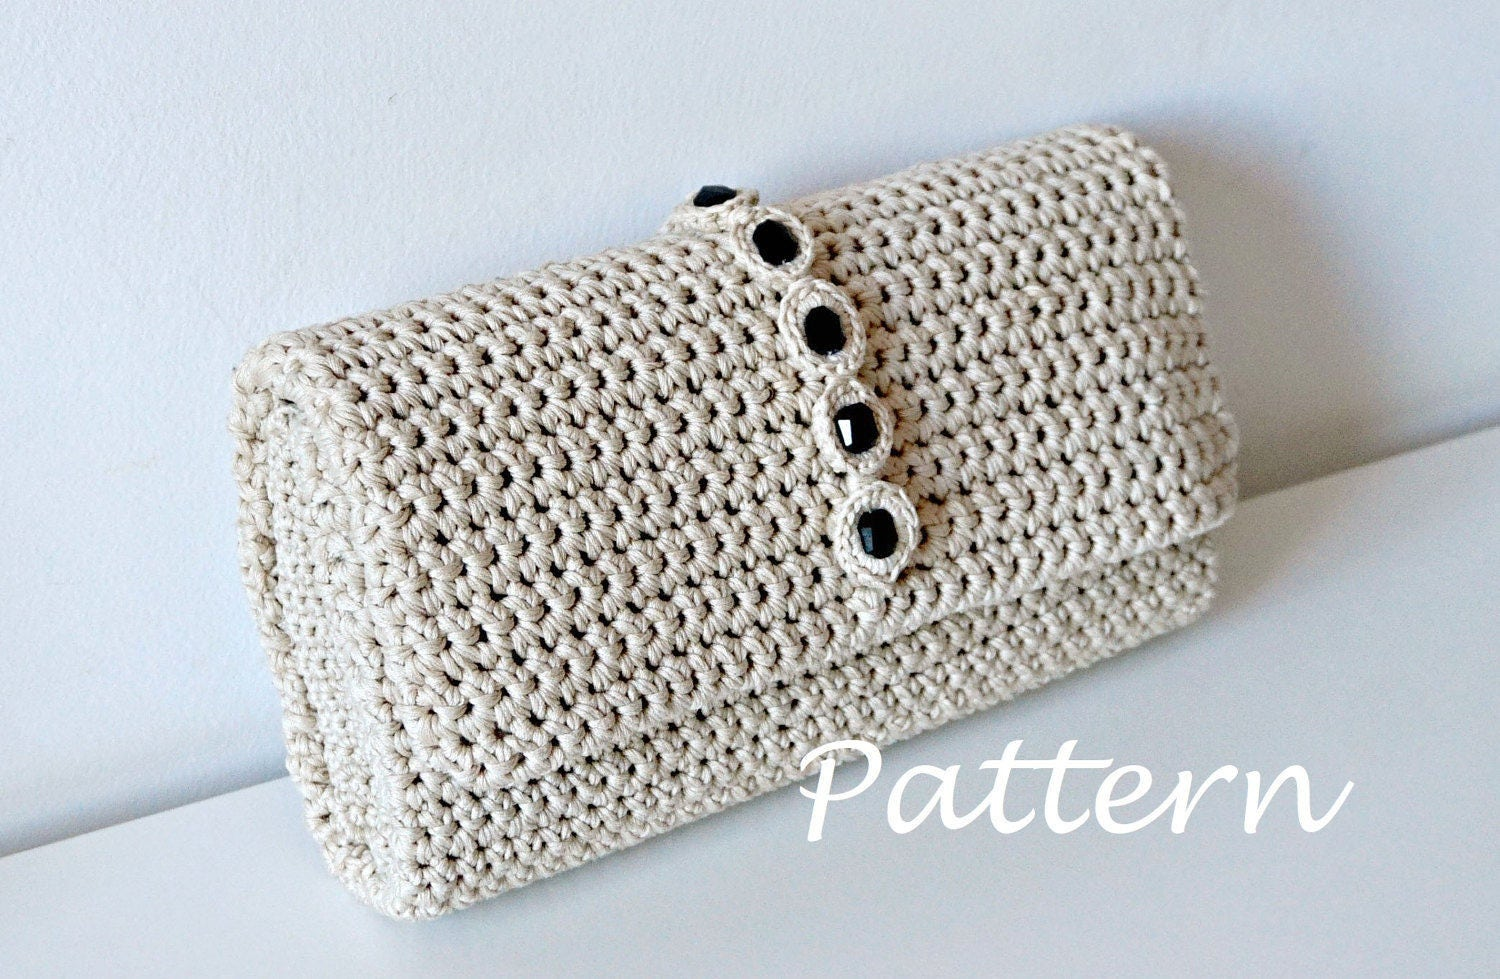 Crochet pattern crochet bag pattern crochet purse pochette pattern this is a digital file bankloansurffo Gallery